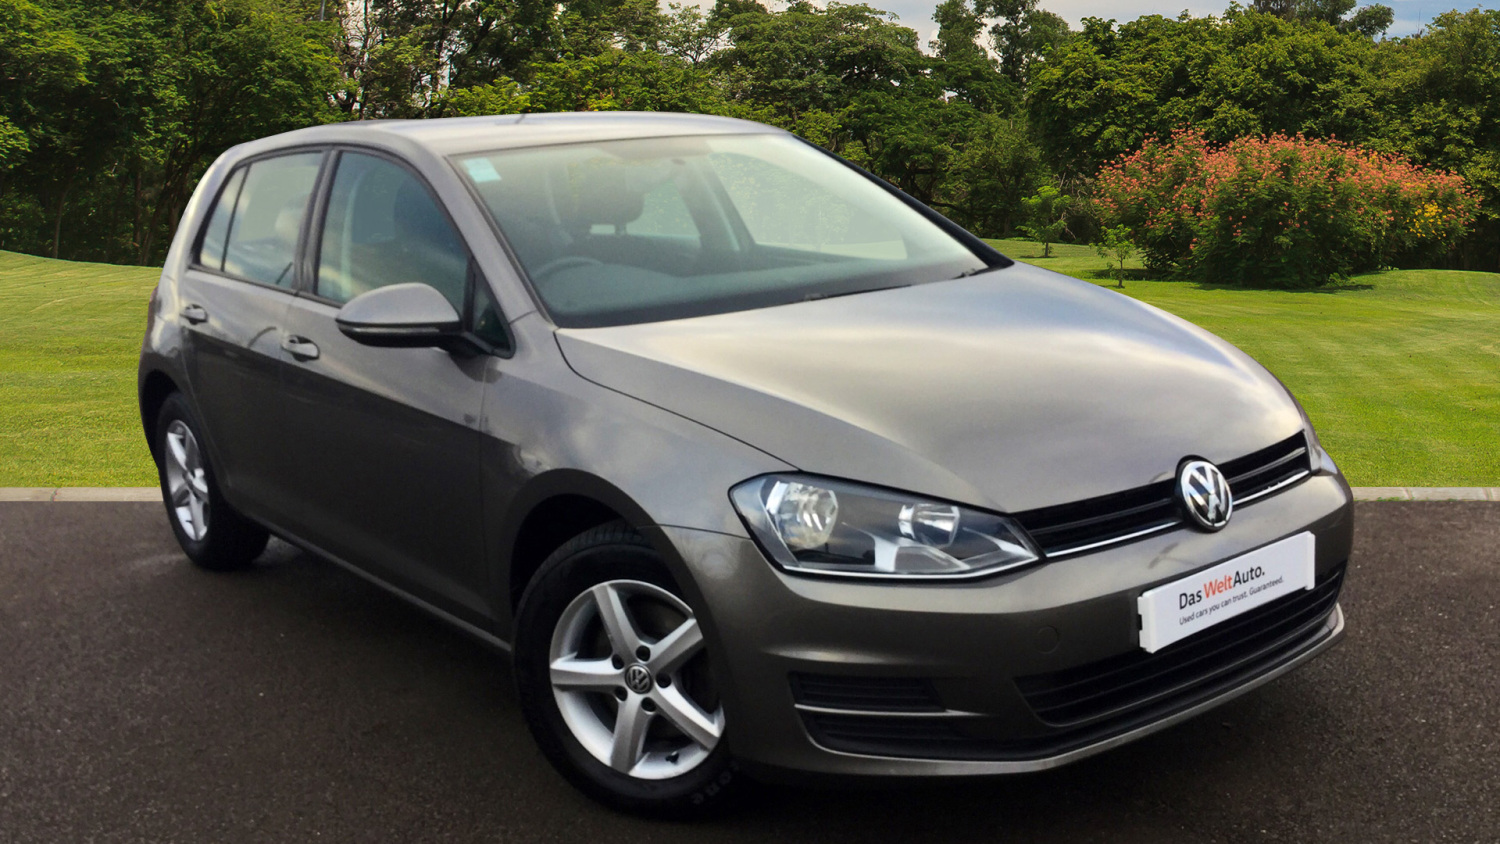 used volkswagen golf 1 4 tsi s 5dr petrol hatchback for sale vertu volkswagen. Black Bedroom Furniture Sets. Home Design Ideas